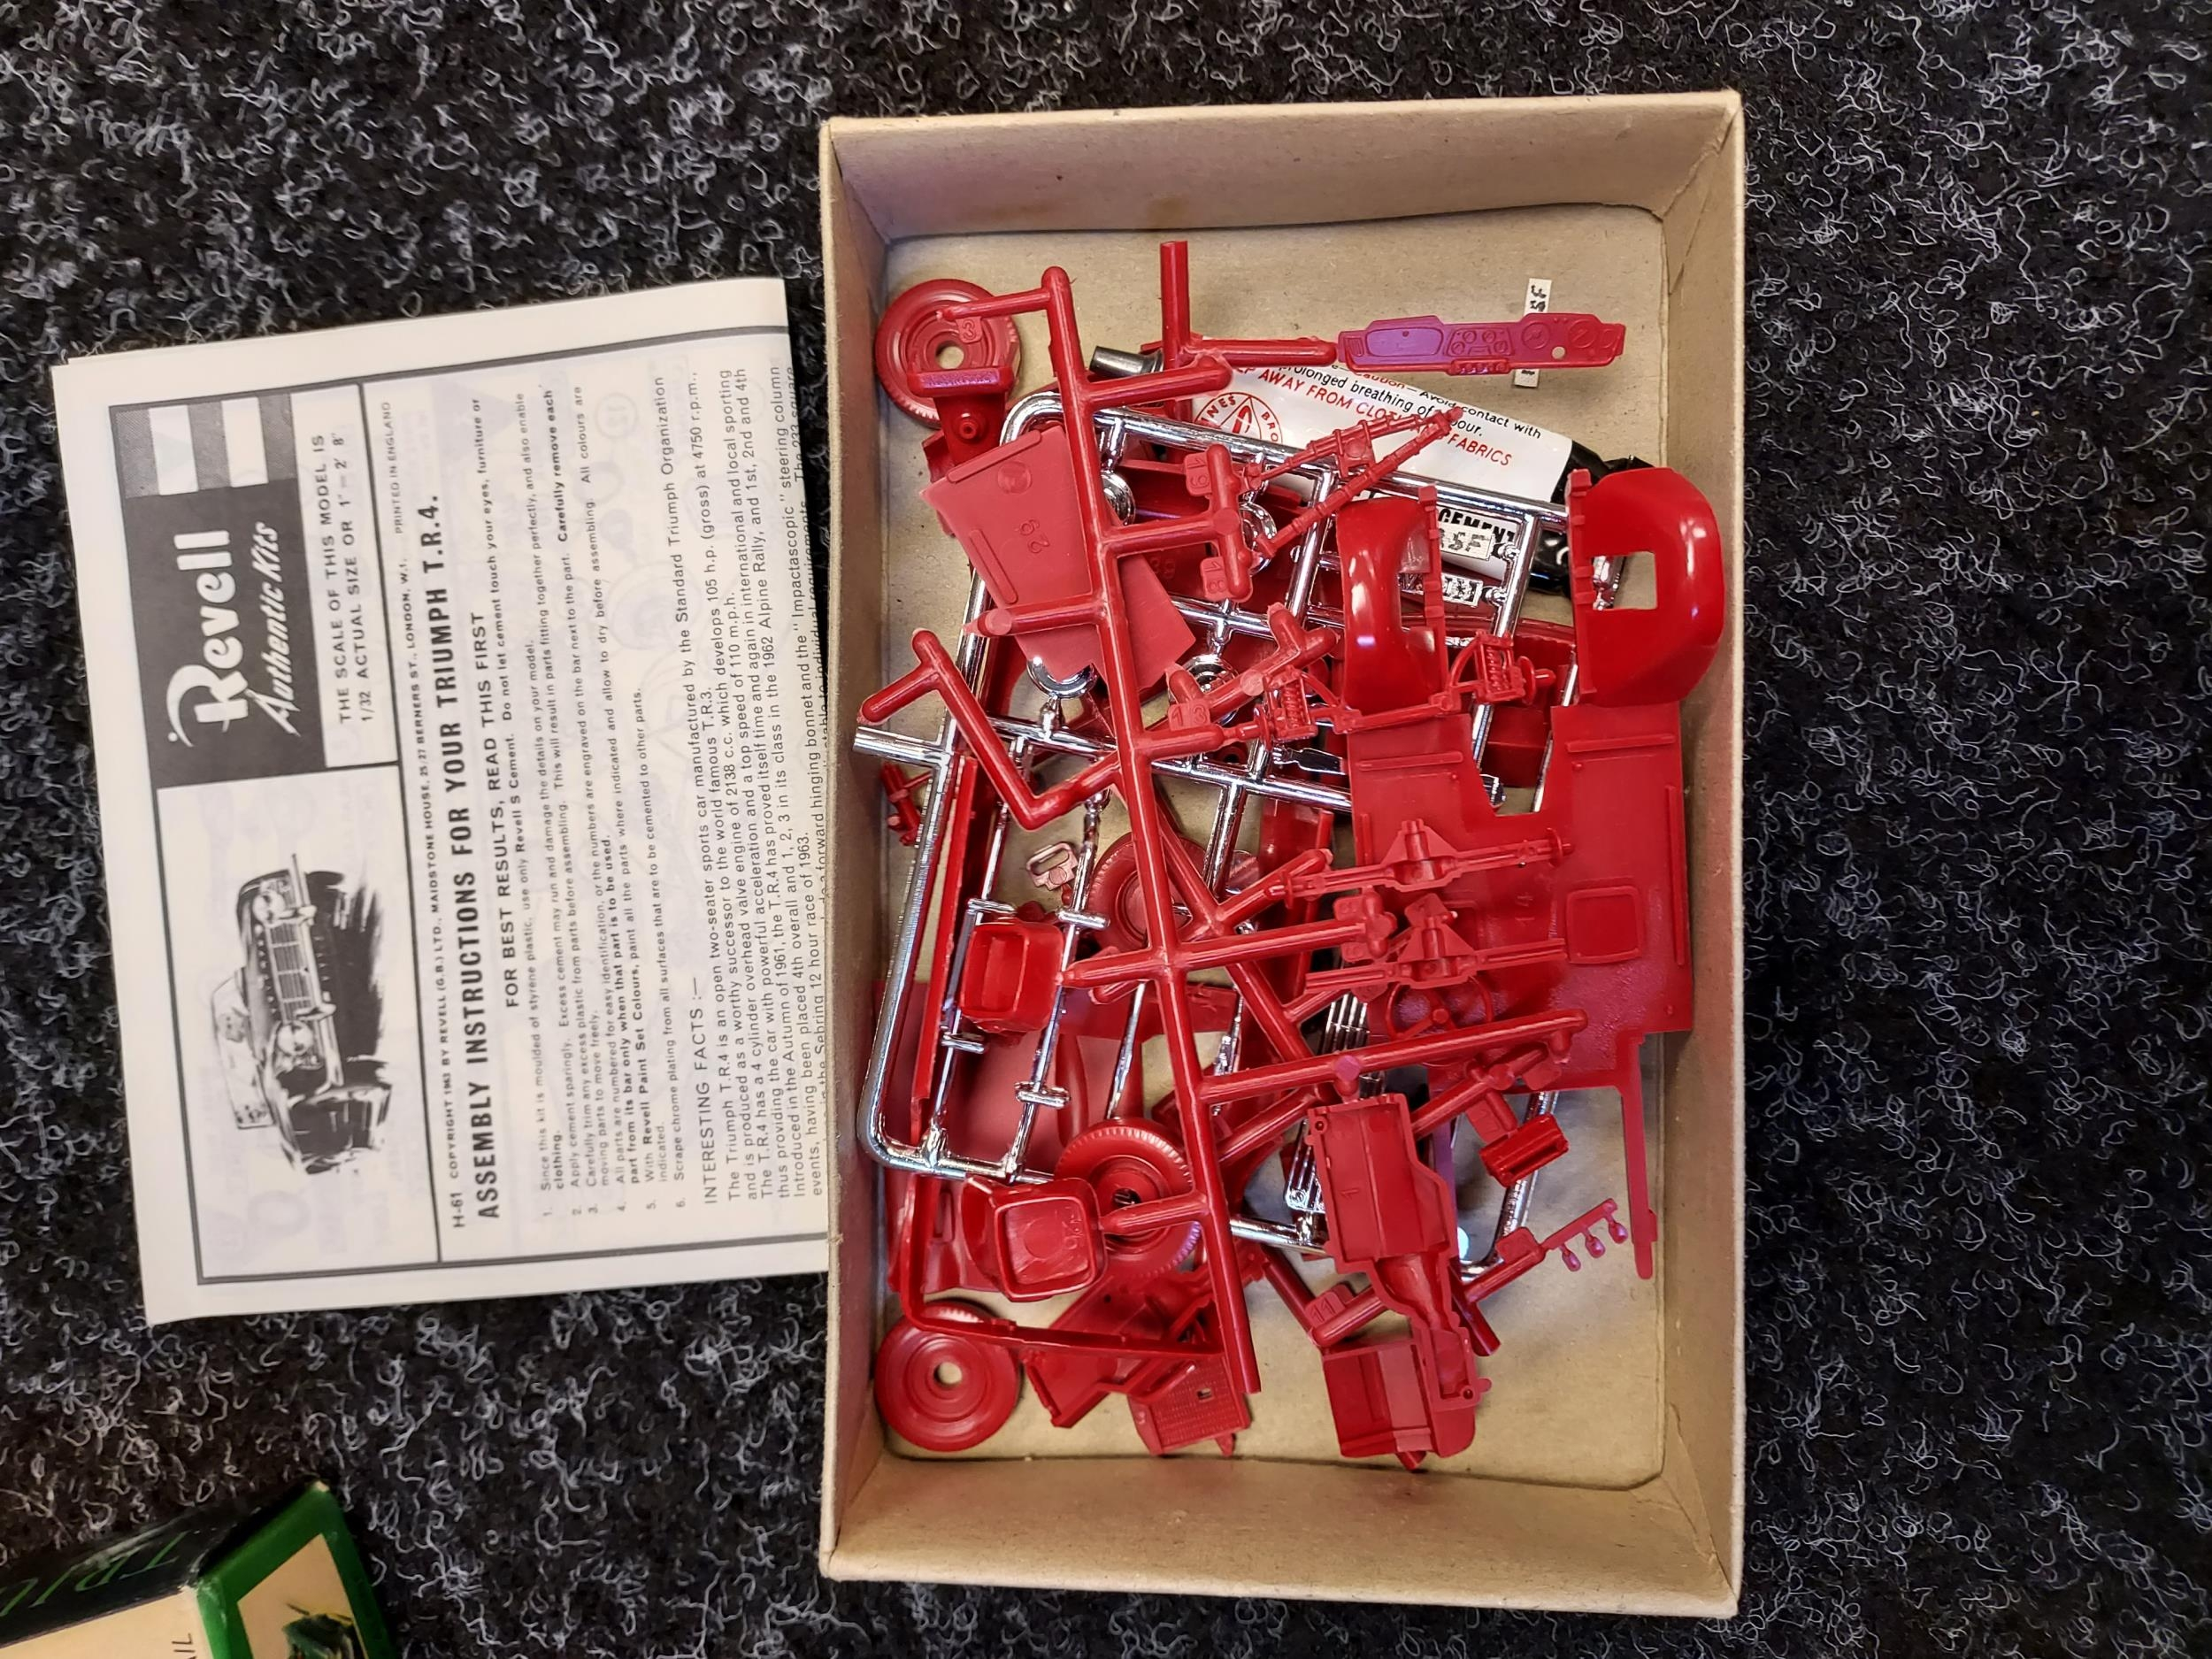 A Box containing a selection of various Meccano parts, magazines and instructions. - Image 3 of 3